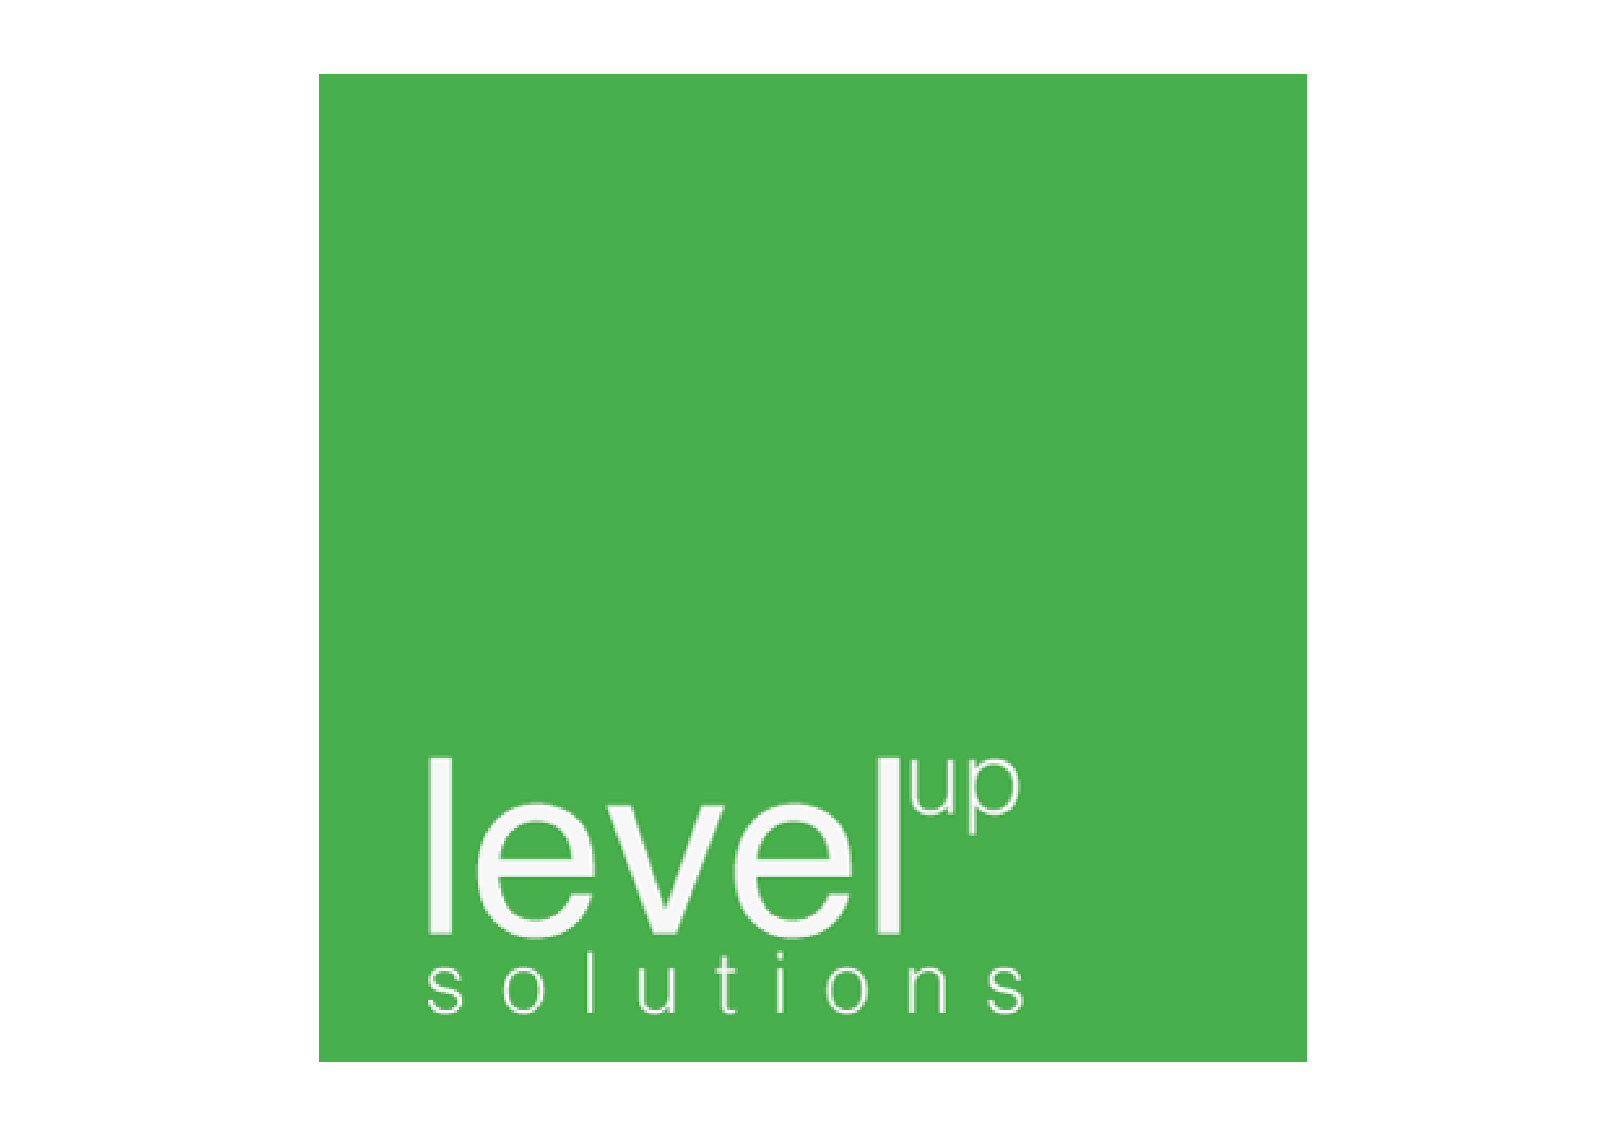 Level up solutions logo